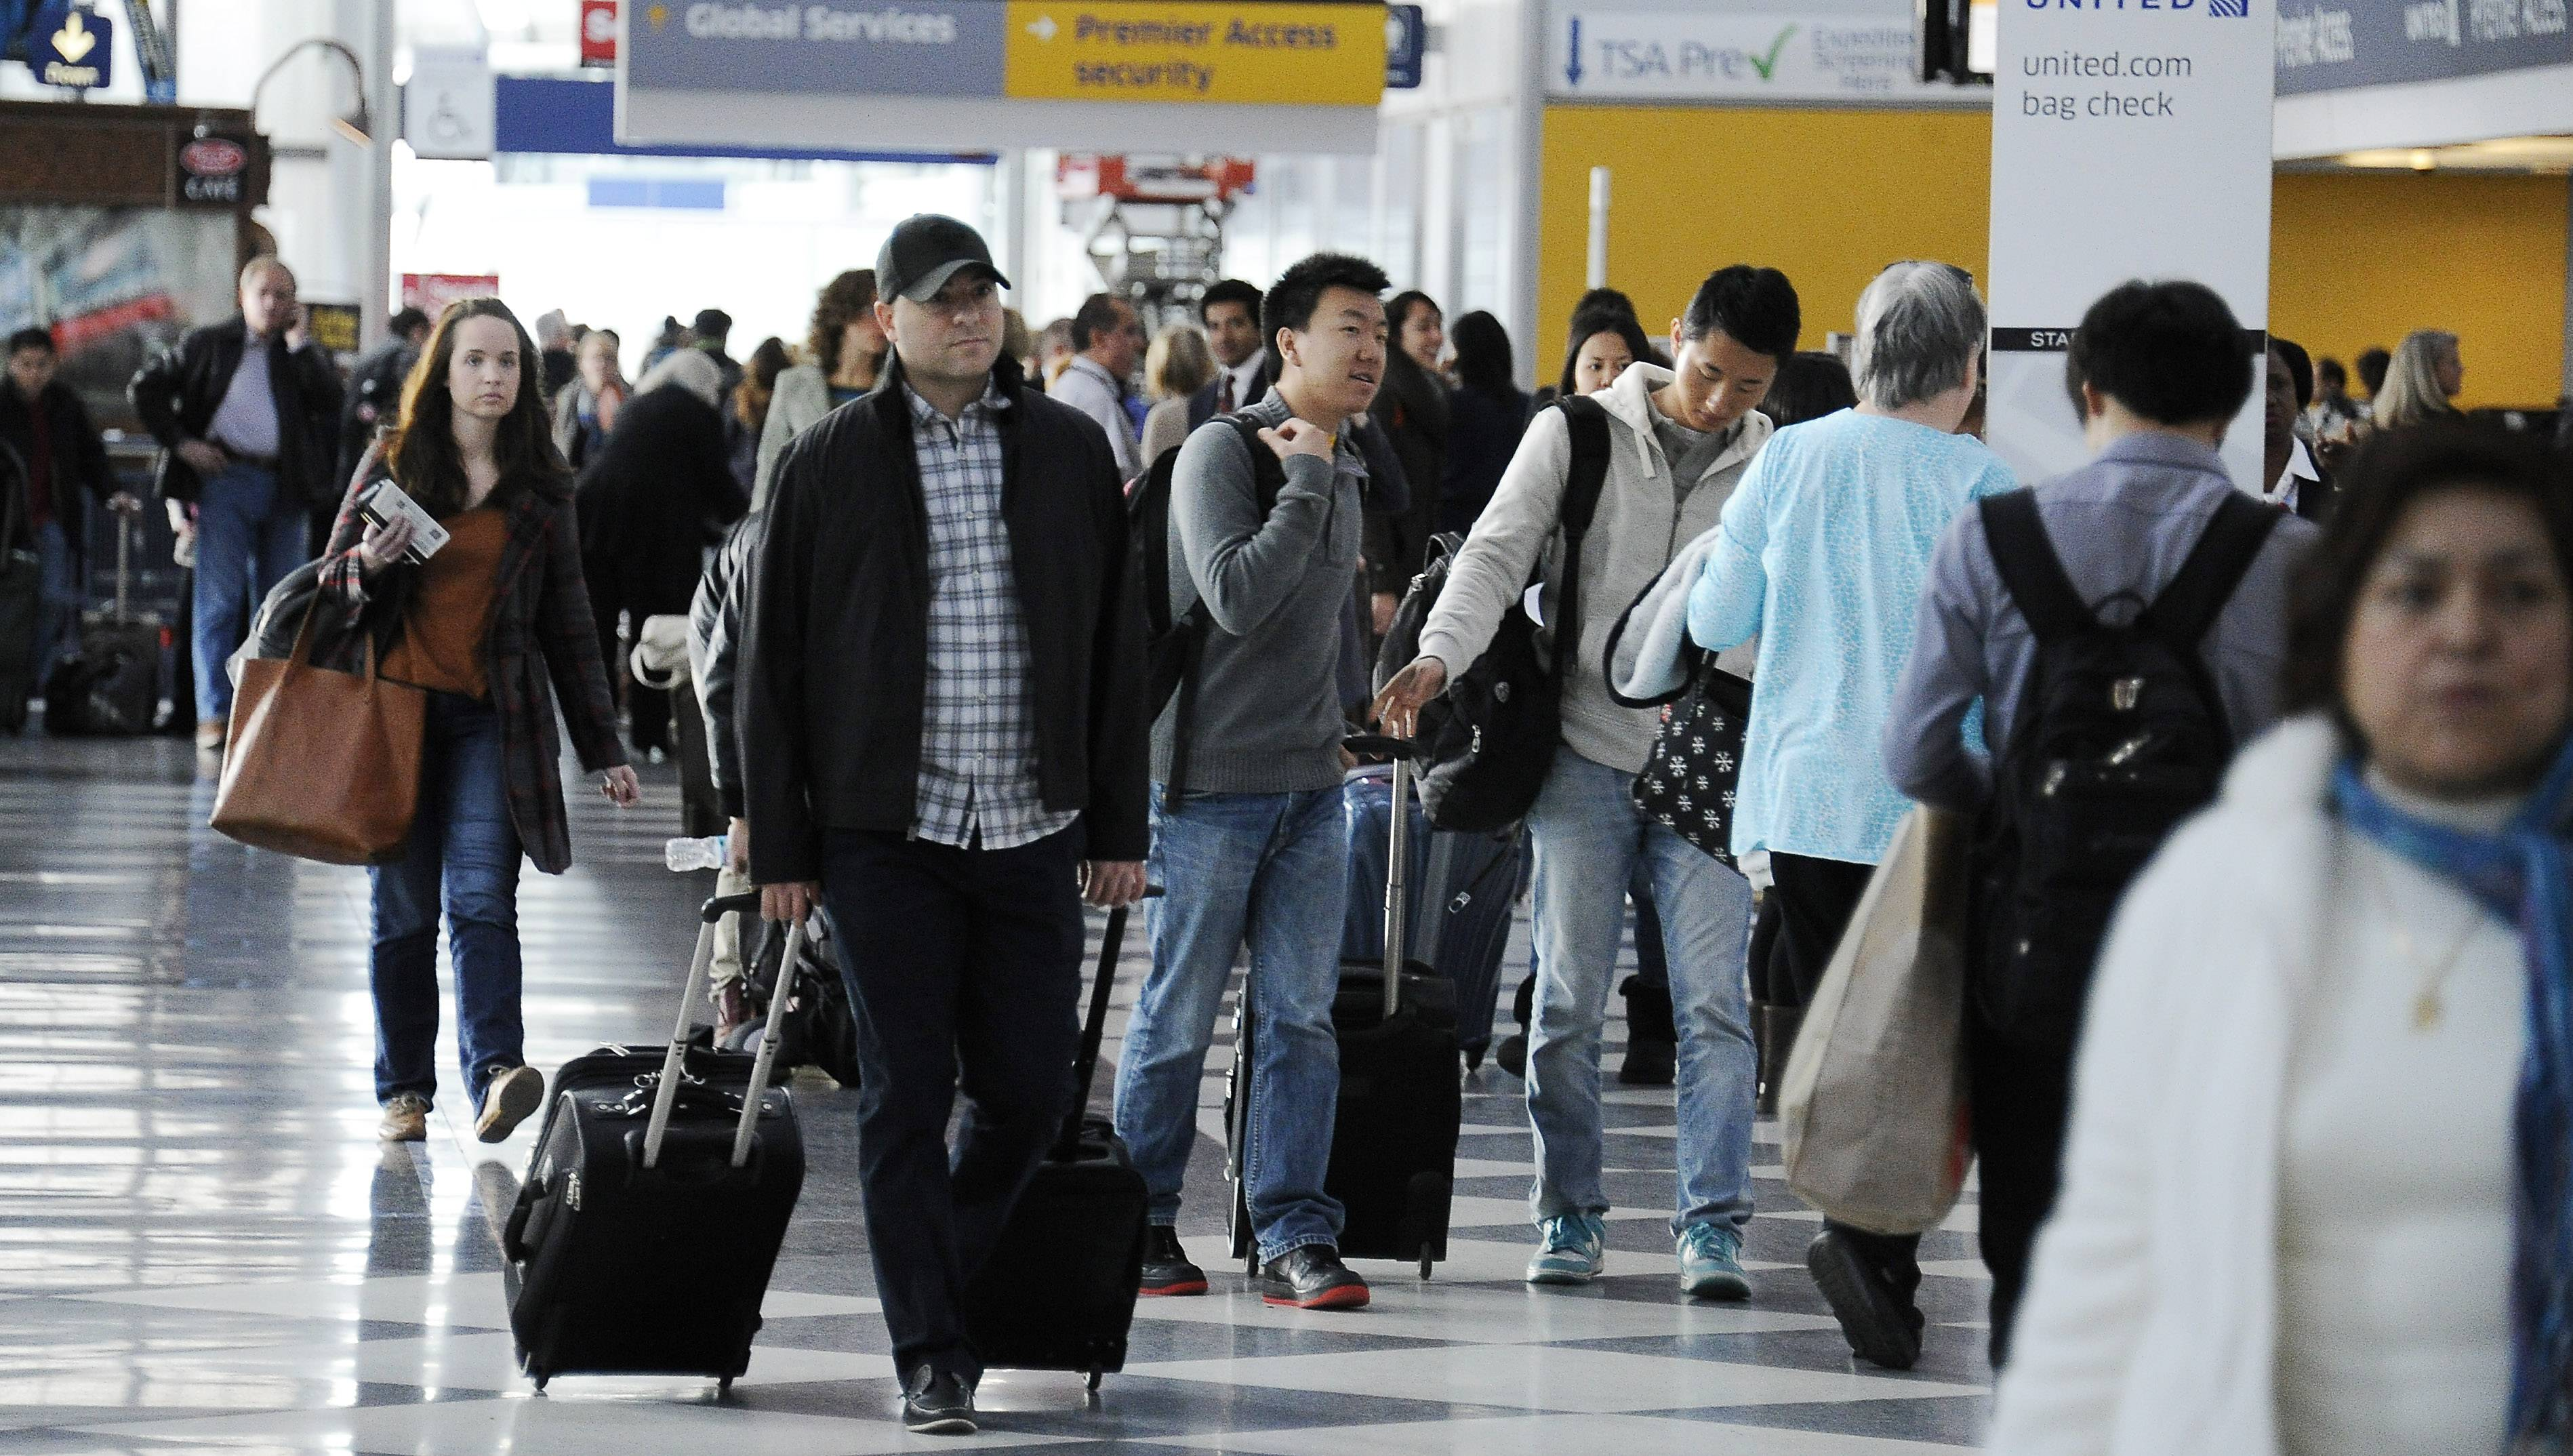 O'Hare International Airport was 14th out of 30 major U.S. airports for on-time arrivals.